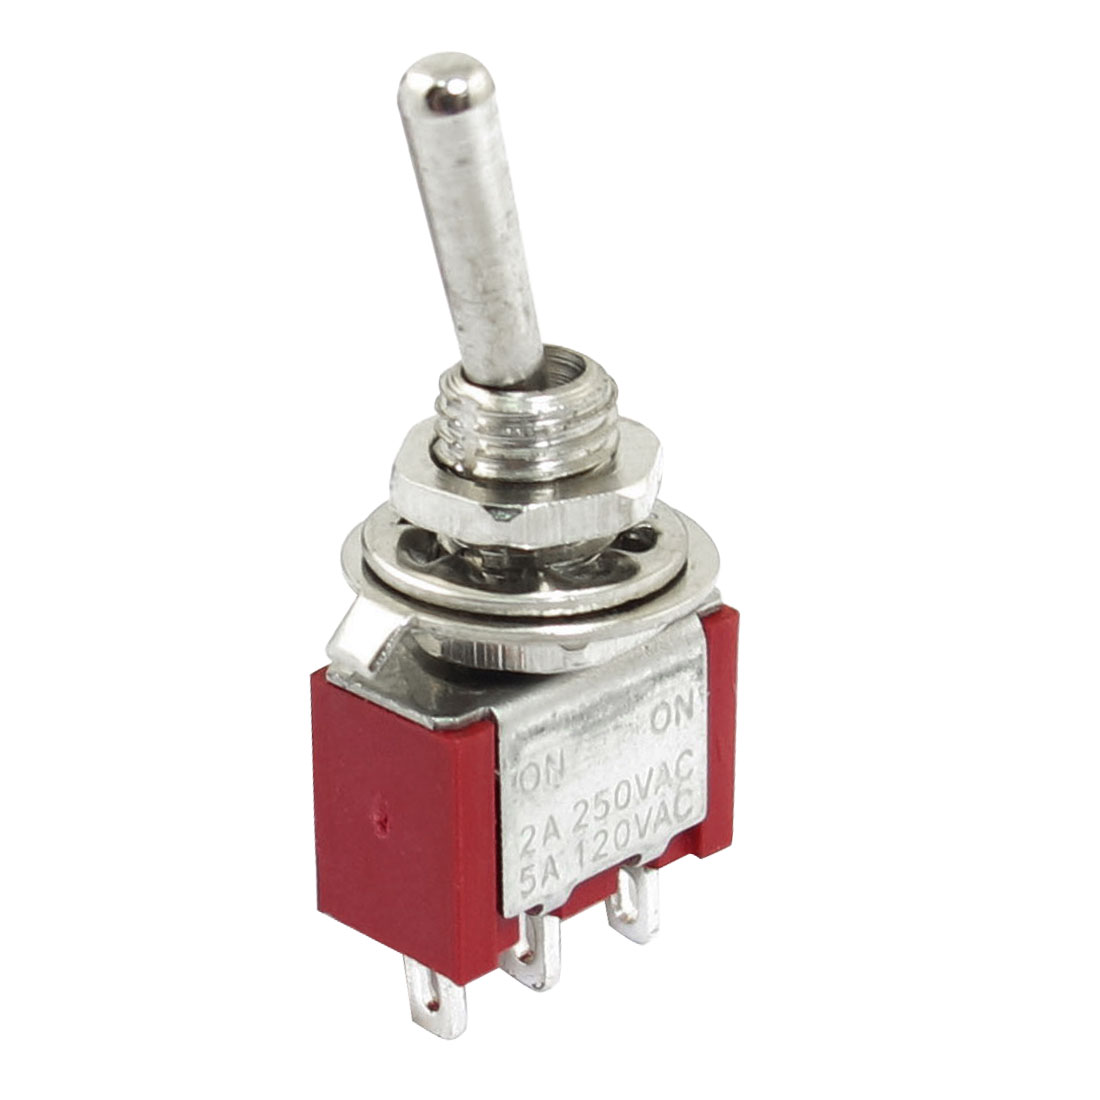 AC 125V 6A SPDT 3P ON-OFF 2 Positions Self Locking Rocker Toggle Switch Red